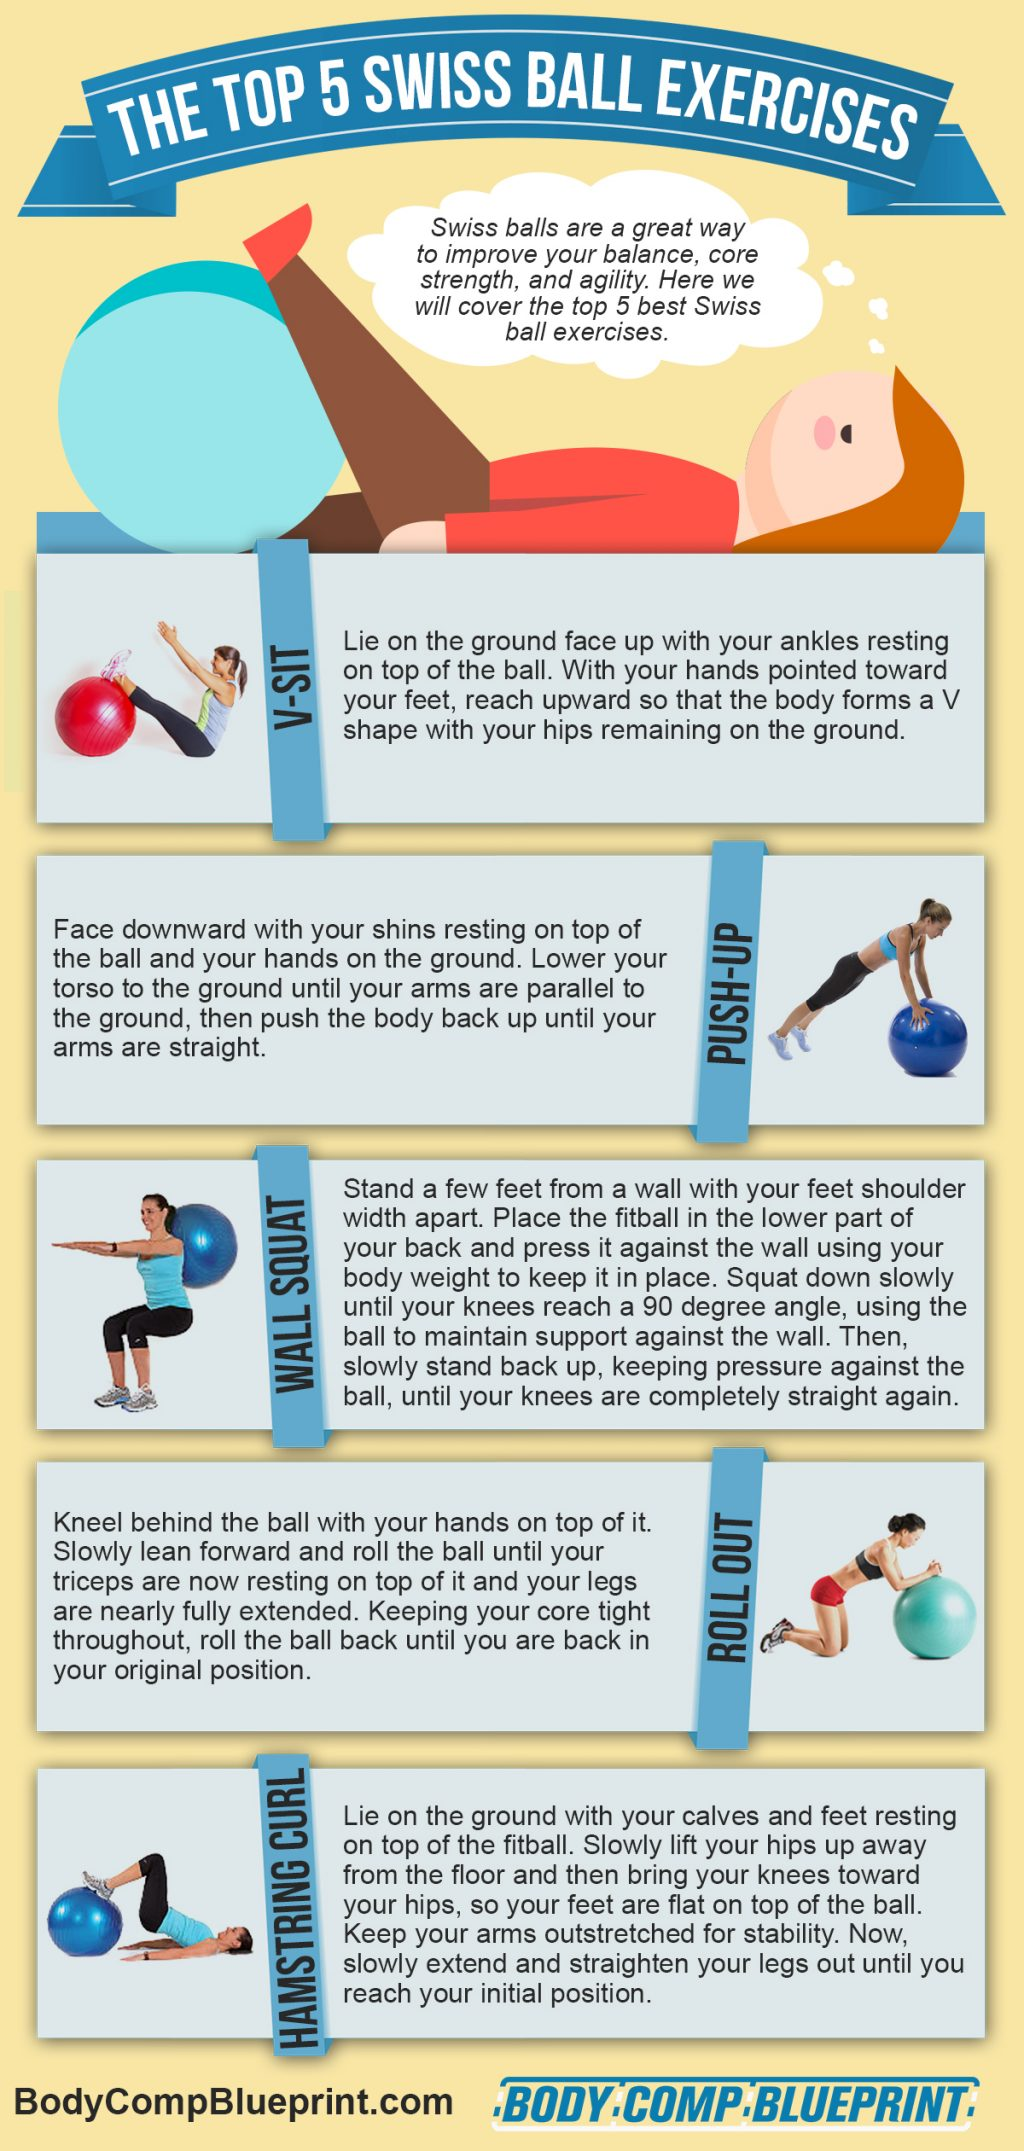 The Top 5 Swiss Ball Exercises